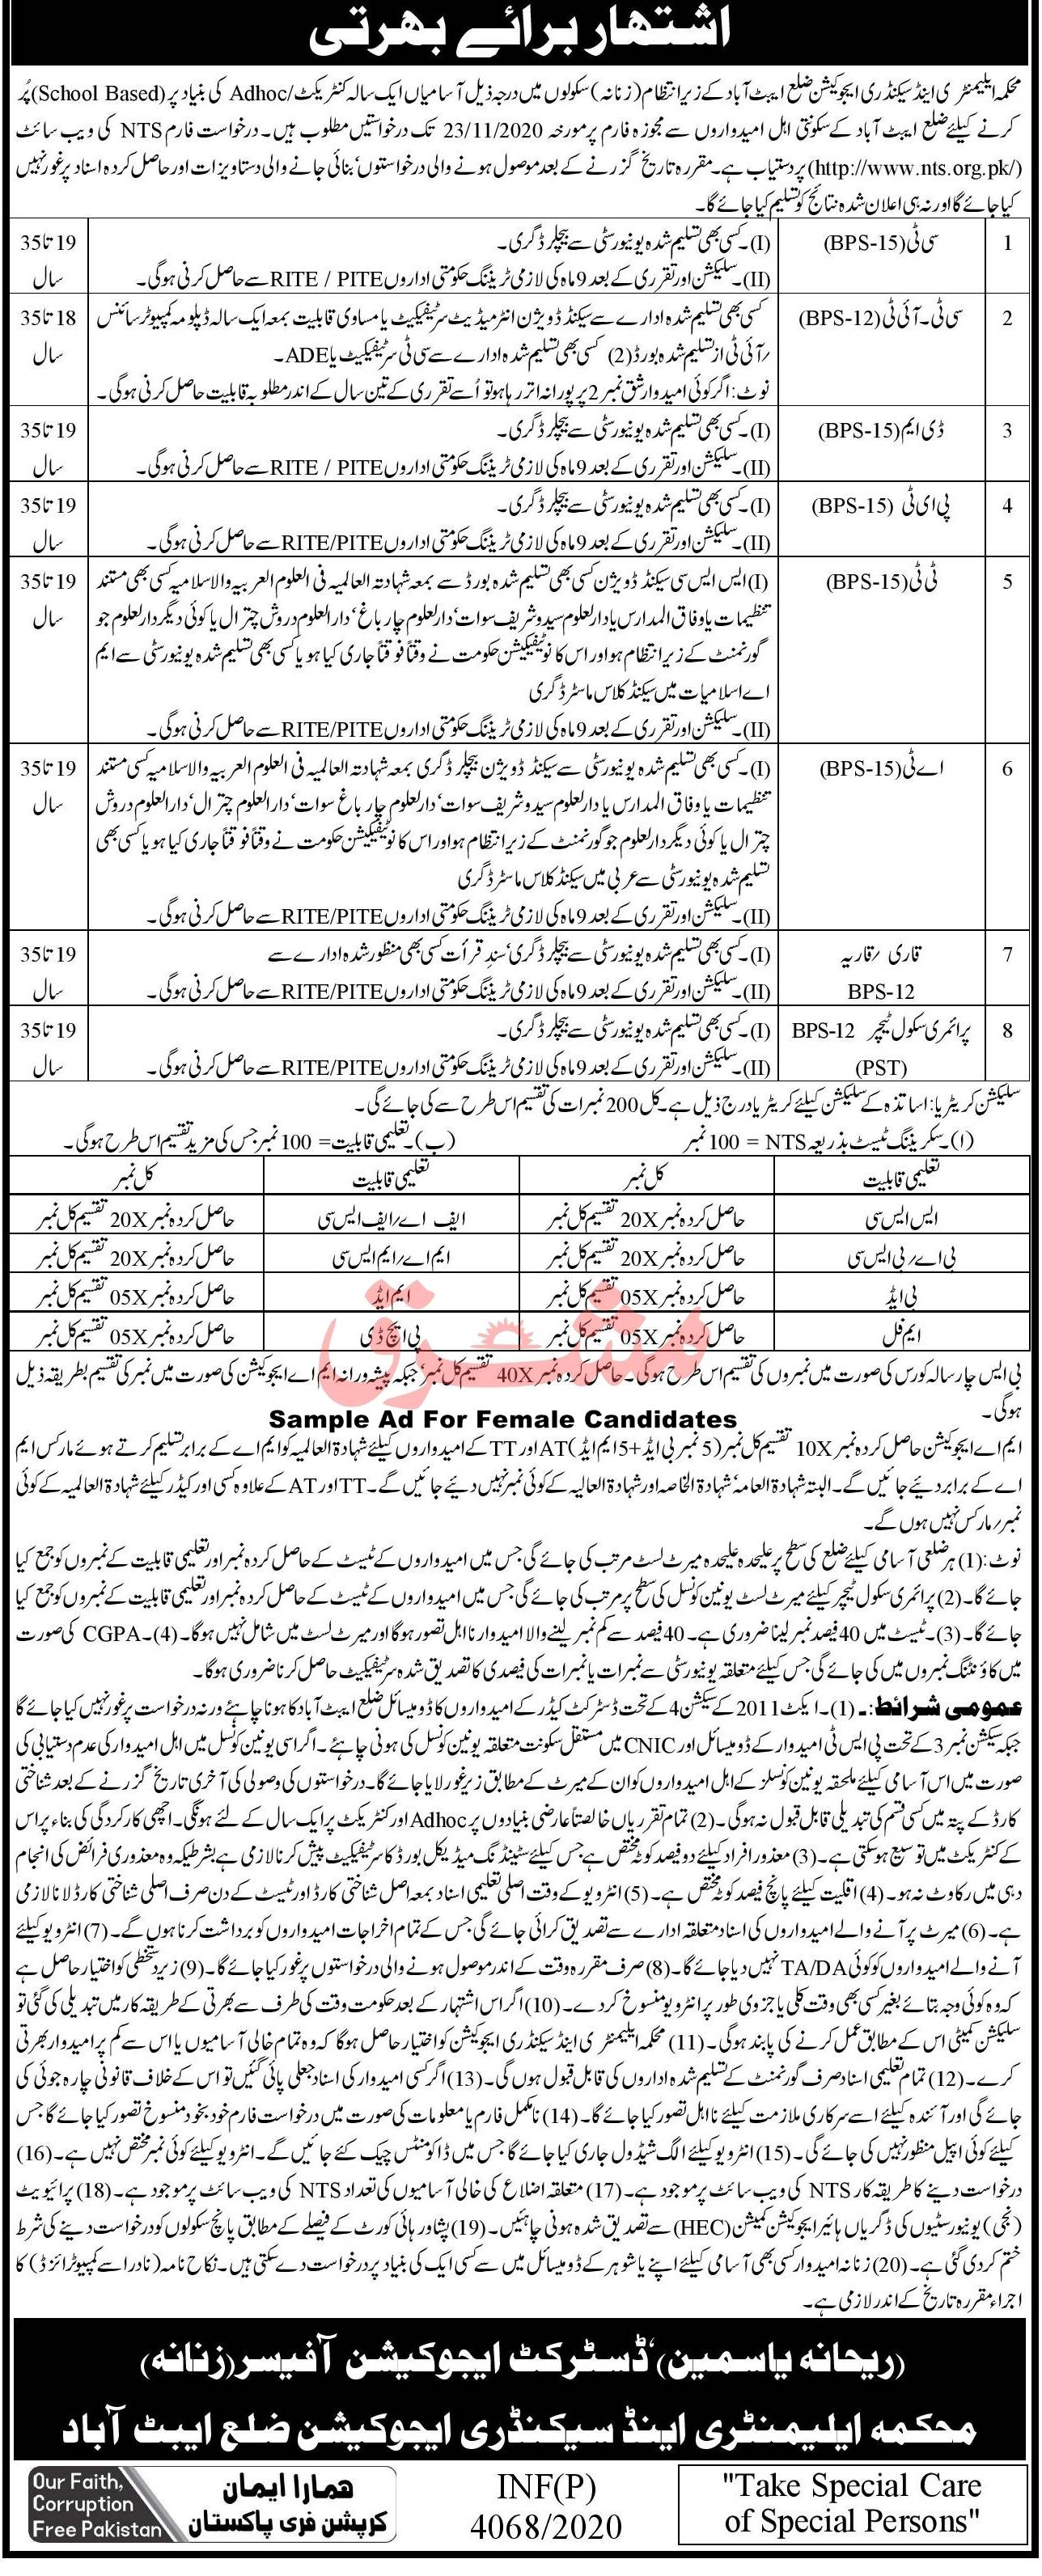 Latest CT, CT IT,DM, PET, ET. Qari, PST, AT, TT Jobs 2020 in Kpk For Females